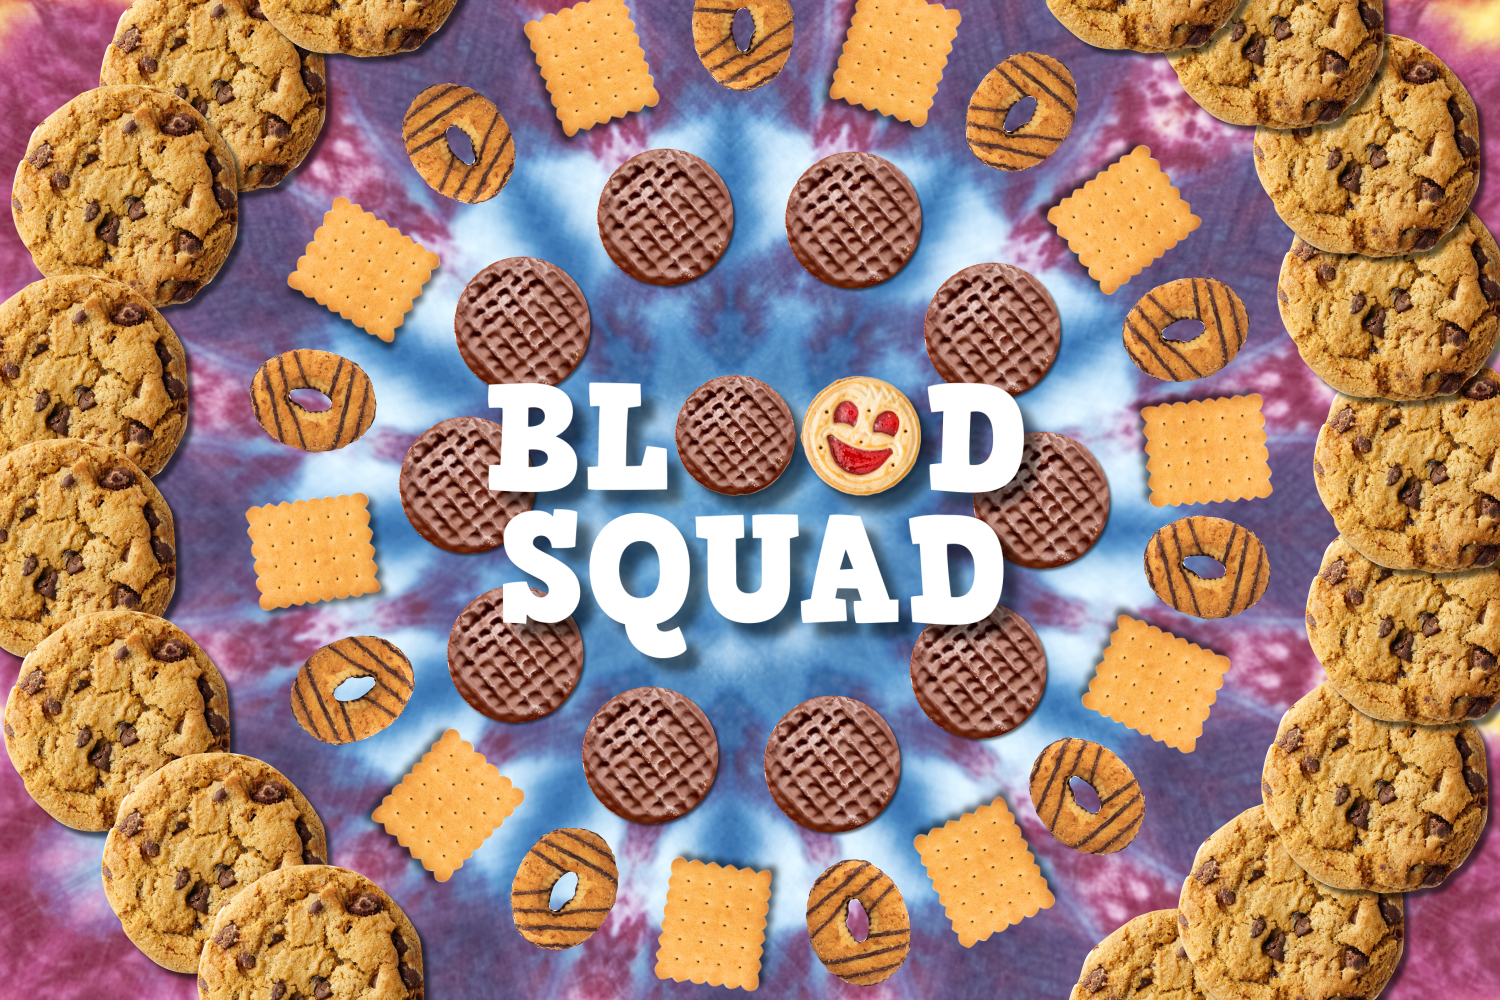 ITV2 Blood Squad 'biscuit' campaign image